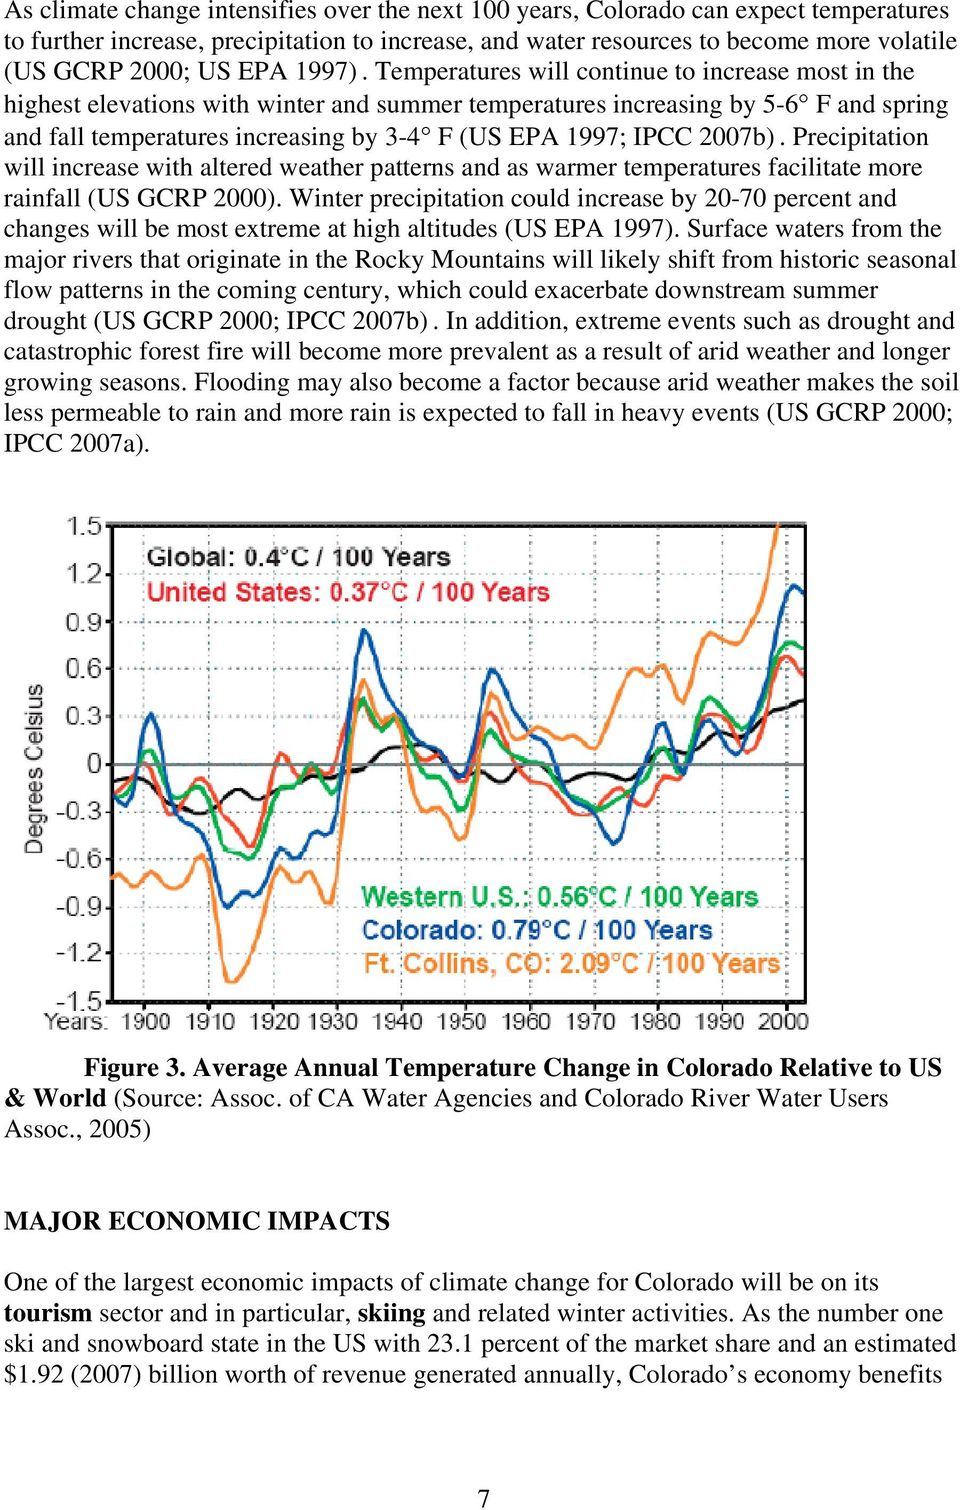 Temperatures will continue to increase most in the highest elevations with winter and summer temperatures increasing by 5-6 F and spring and fall temperatures increasing by 3-4 F (US EPA 1997; IPCC